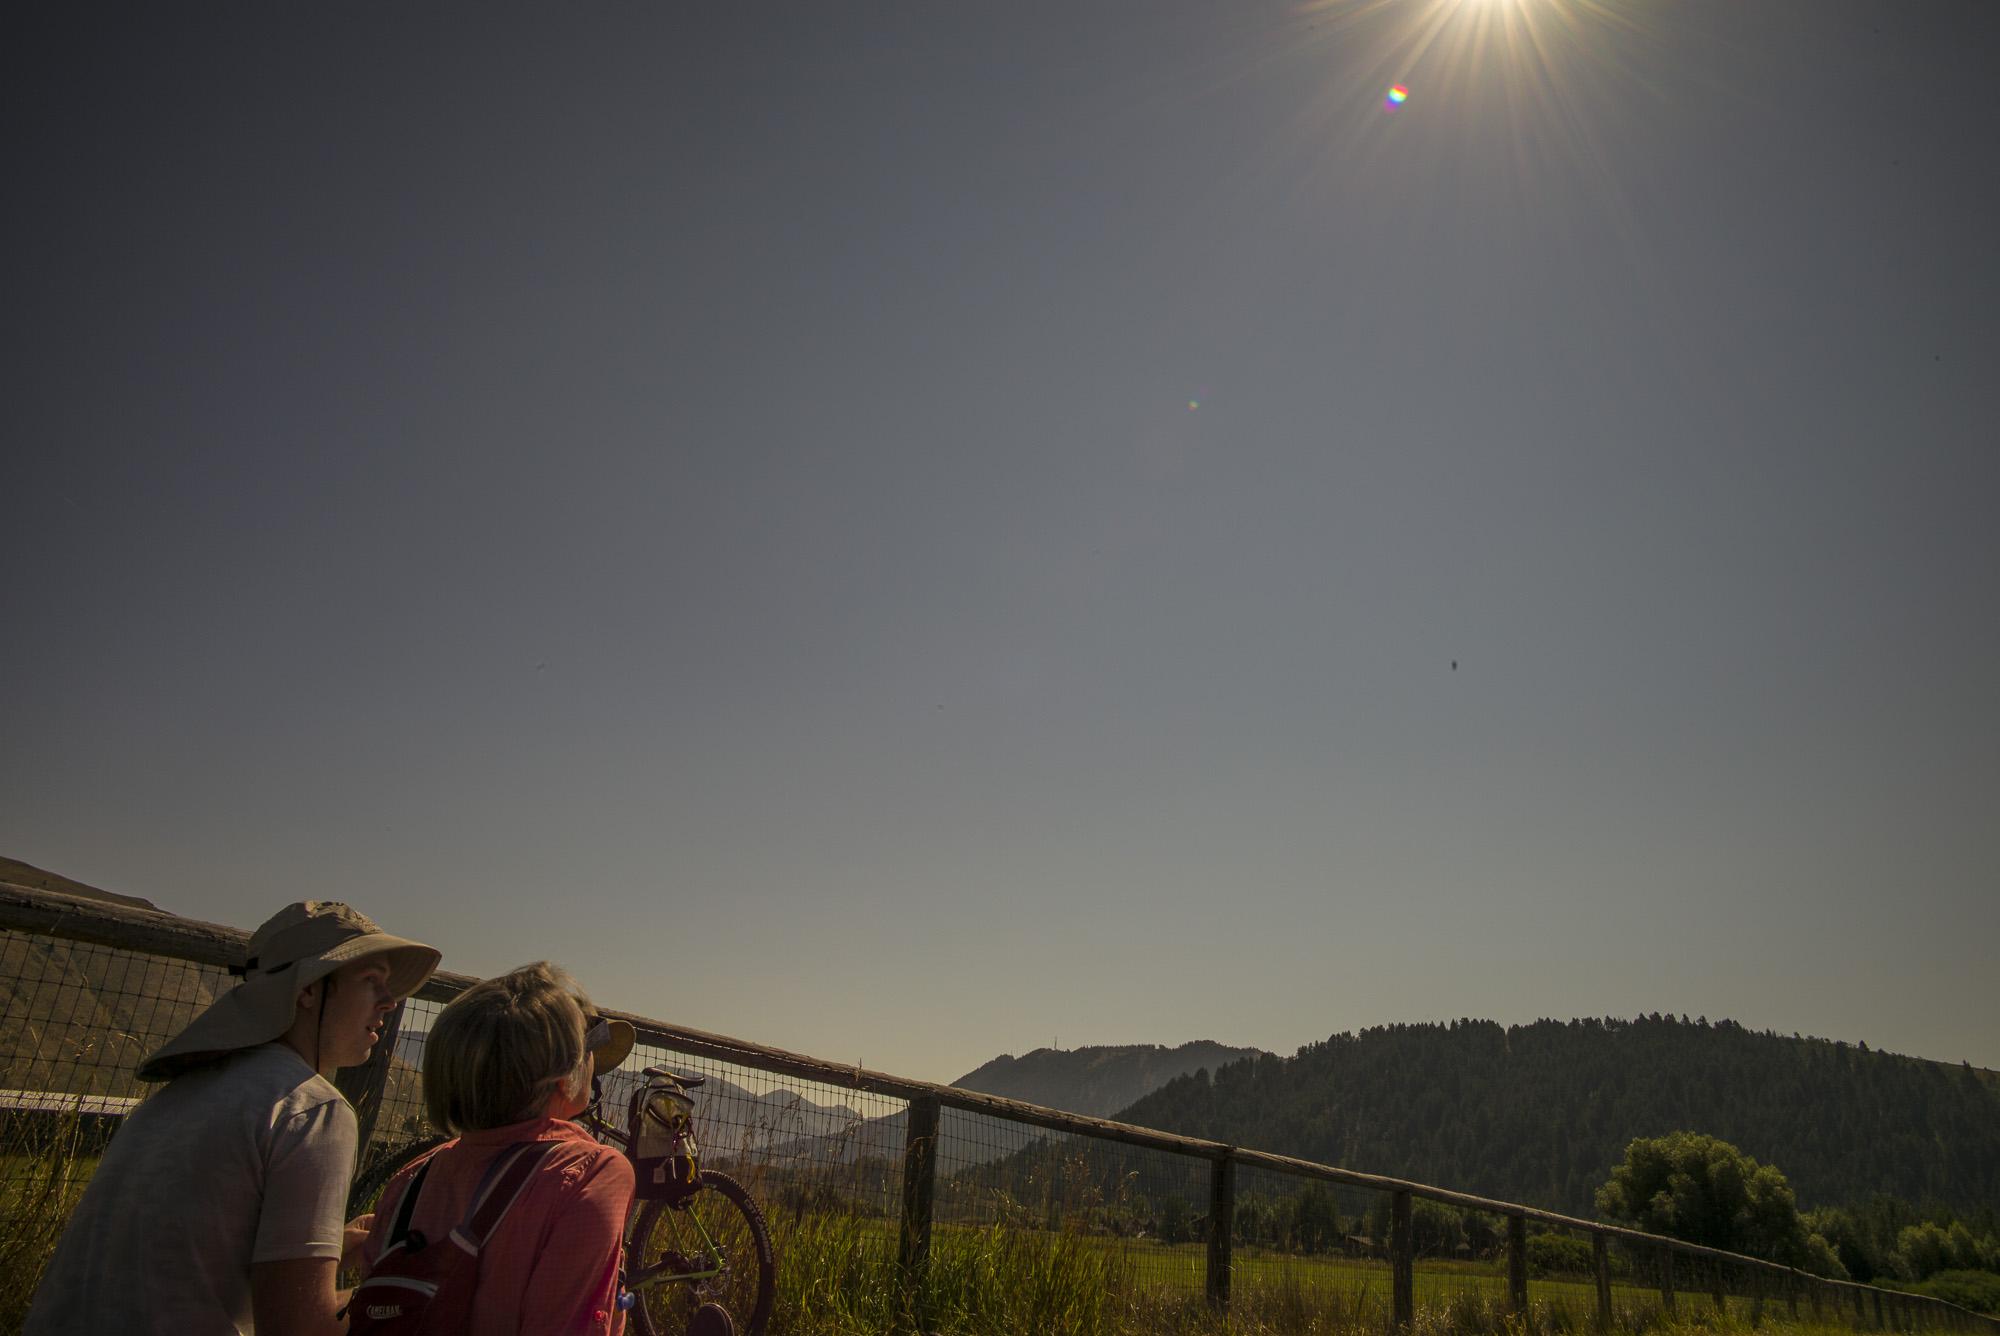 20 seconds before Totality